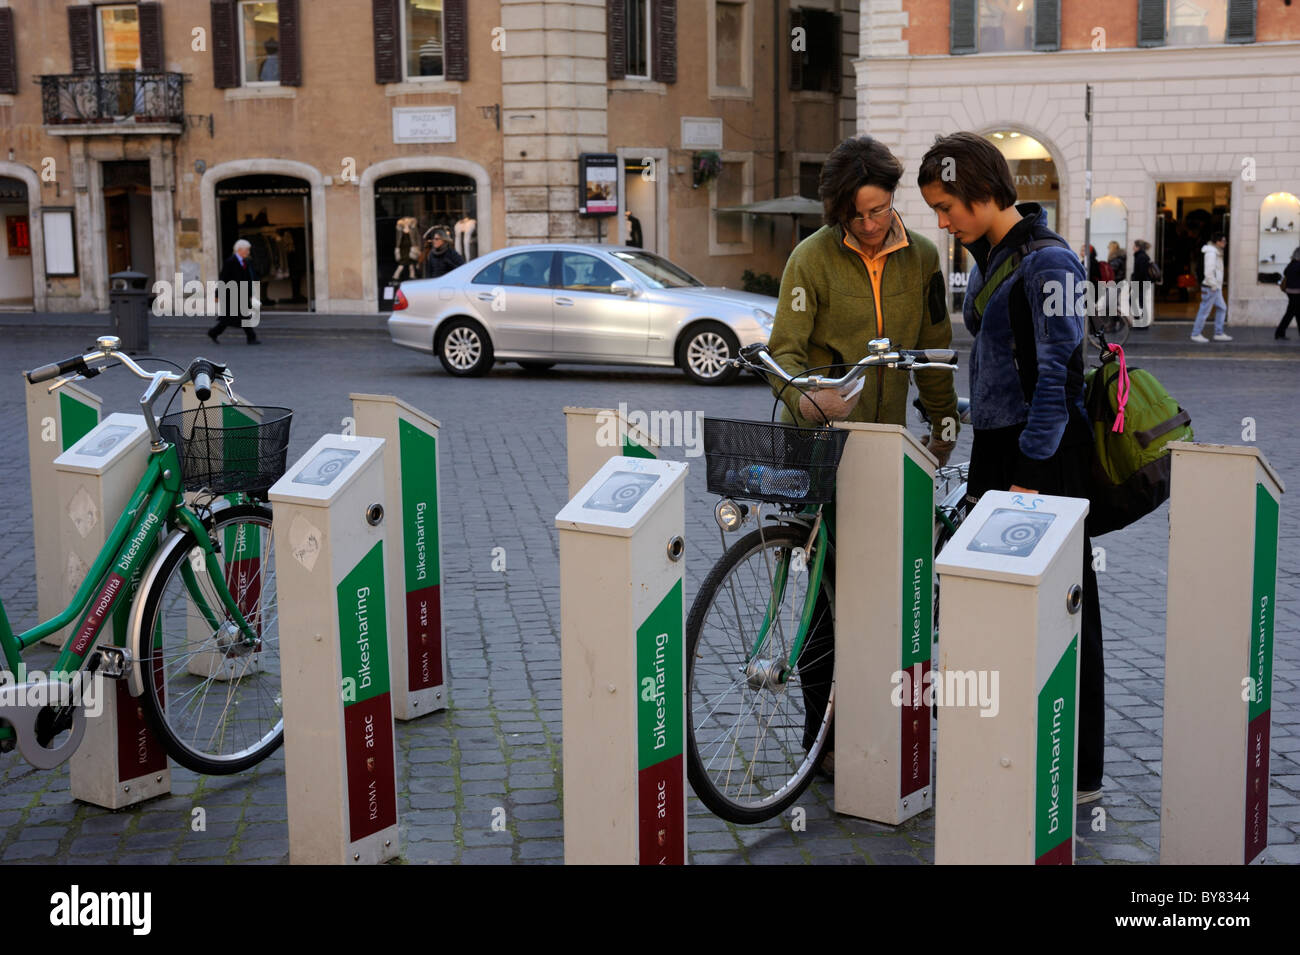 italy, rome, piazza di spagna, bike sharing - Stock Image